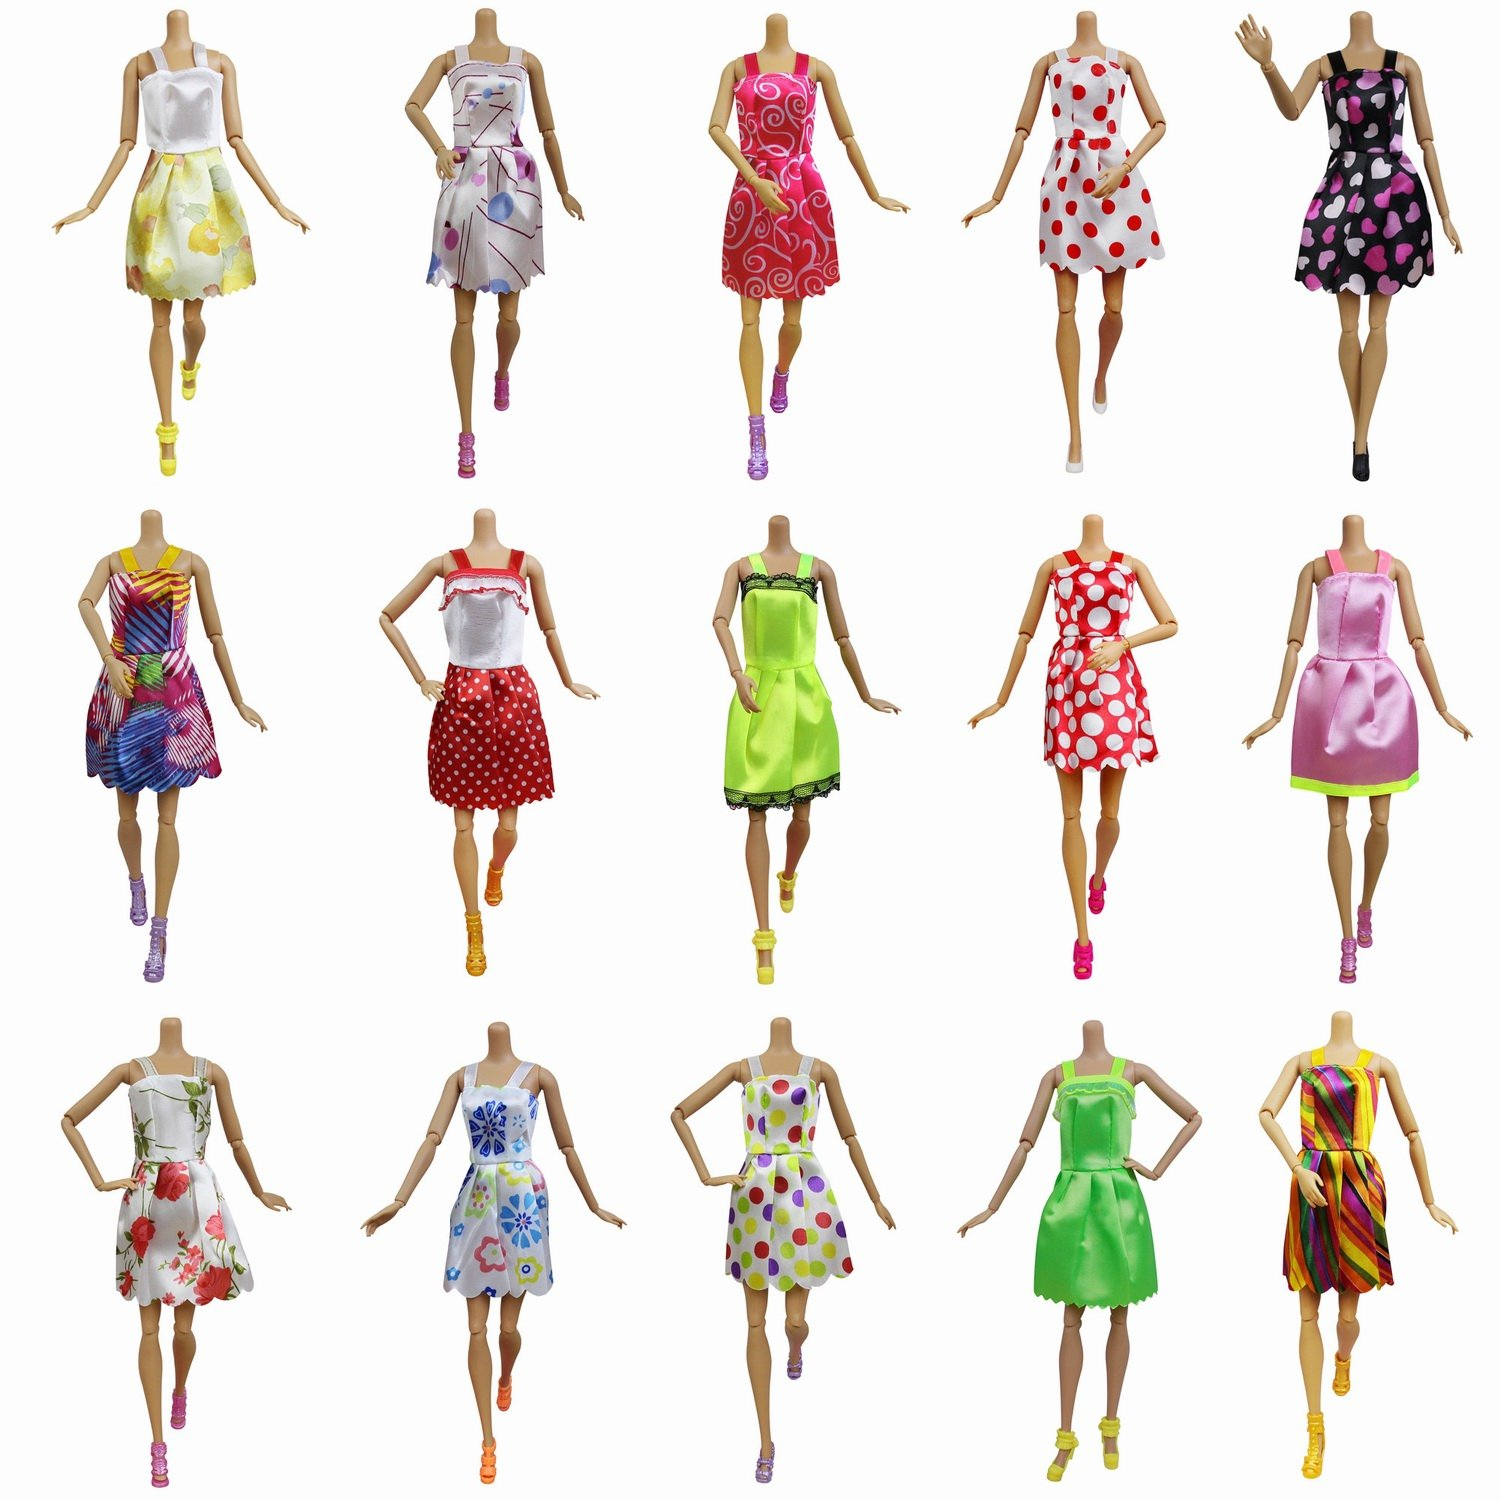 Amazon.com: 10 PCS Doll Clothes Party Mini Gown Dress + 10 Pair of Shoes fit for 11.5 inch Barbie Doll Birthday Christmas Gift - Ramdon Design Outfits: Toys ...